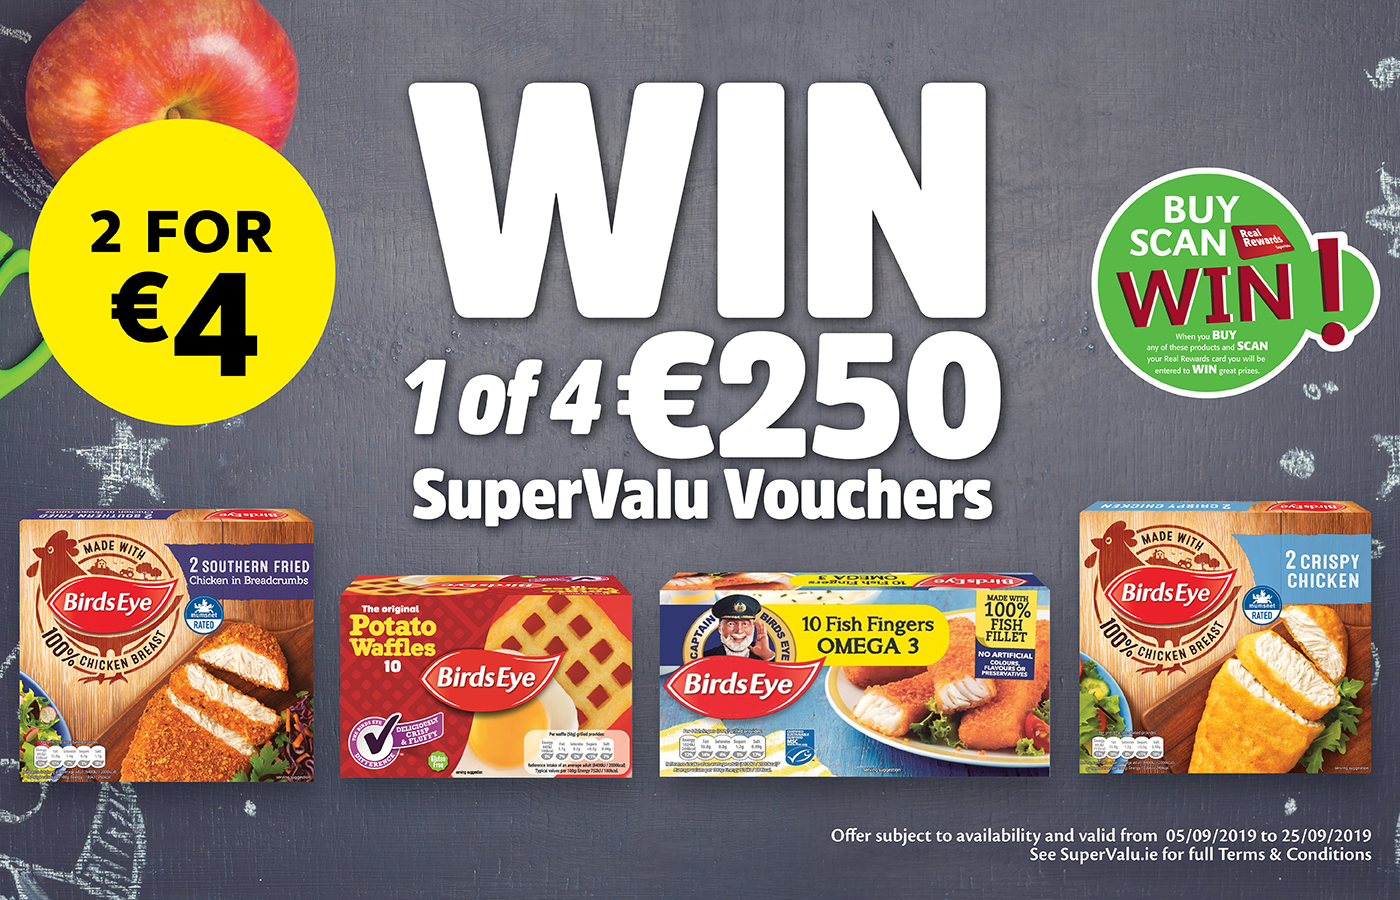 Save on family favourites and be in with a chance to WIN 1 of 4 €250 SuperValu Shopping Vouchers